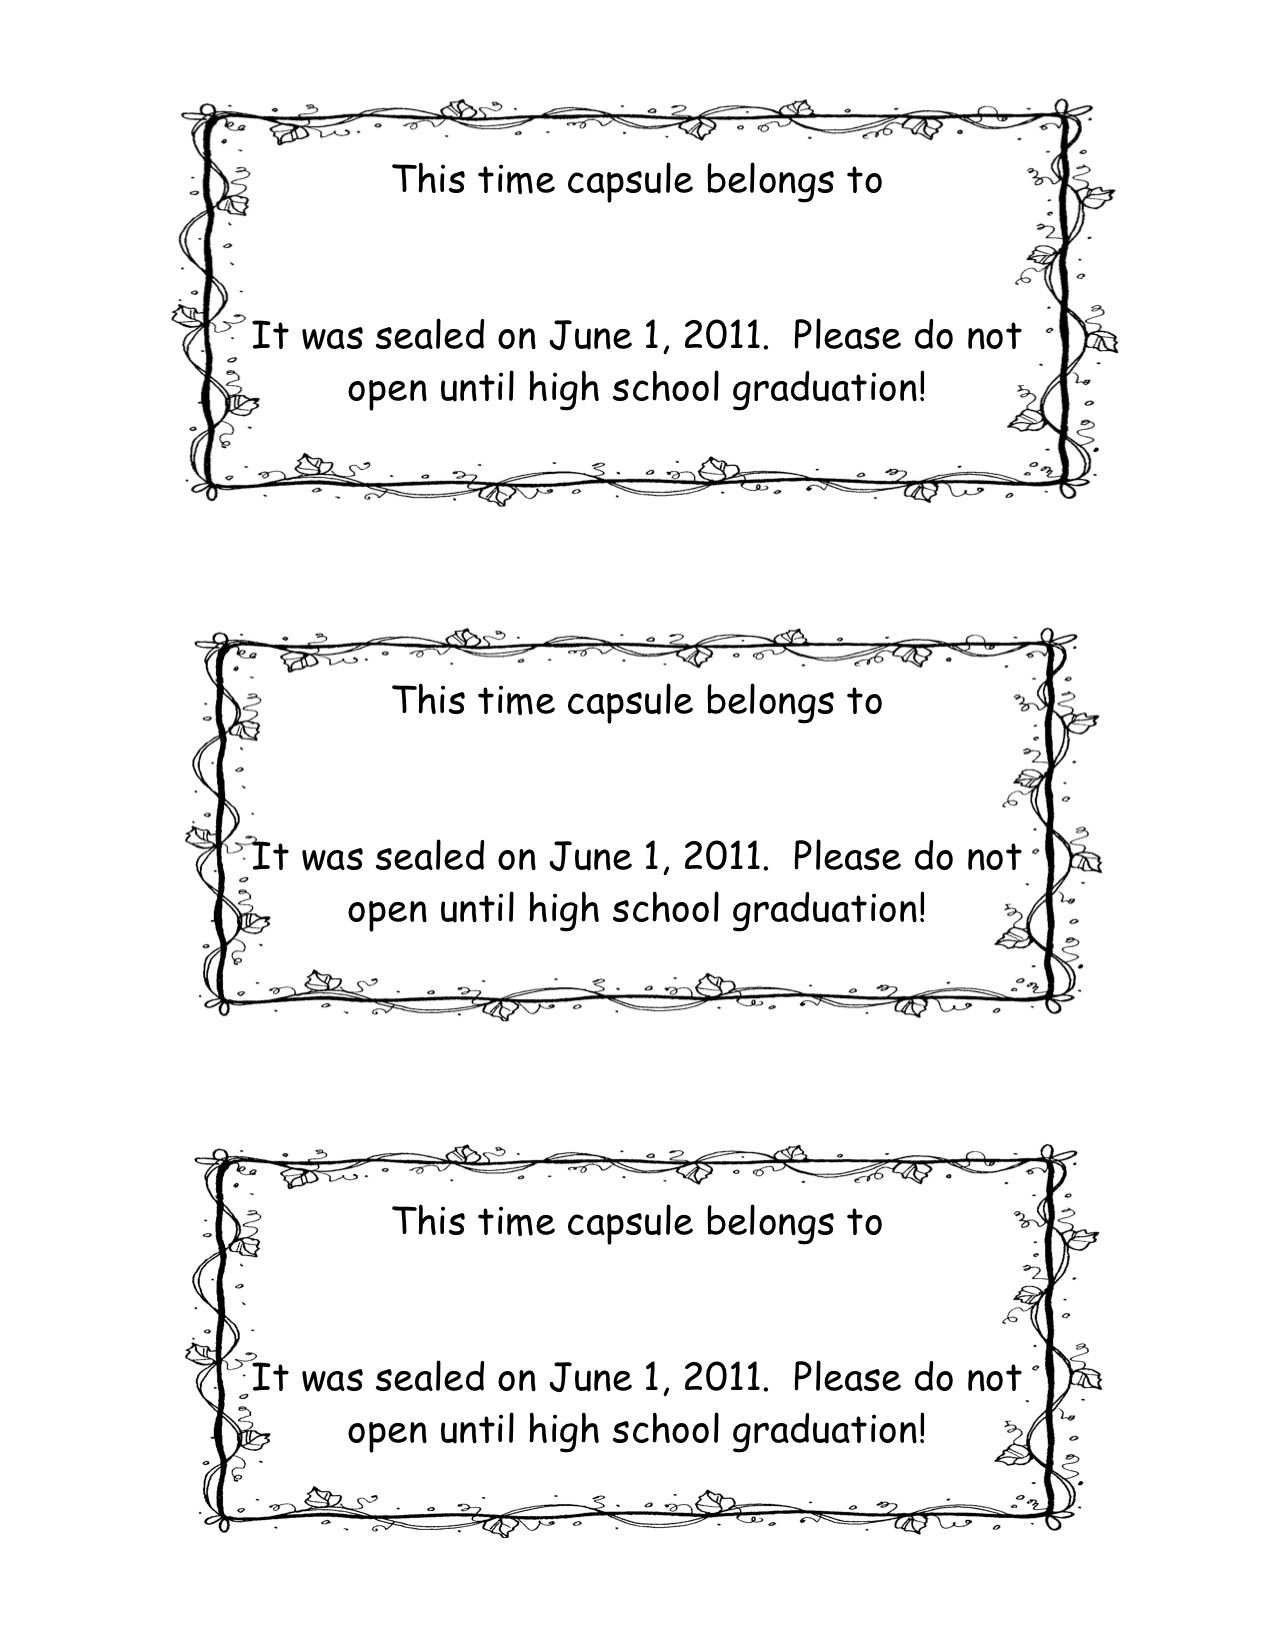 Worksheets Time Capsule Worksheet time capsules kindergarten activities and school graduation capsule